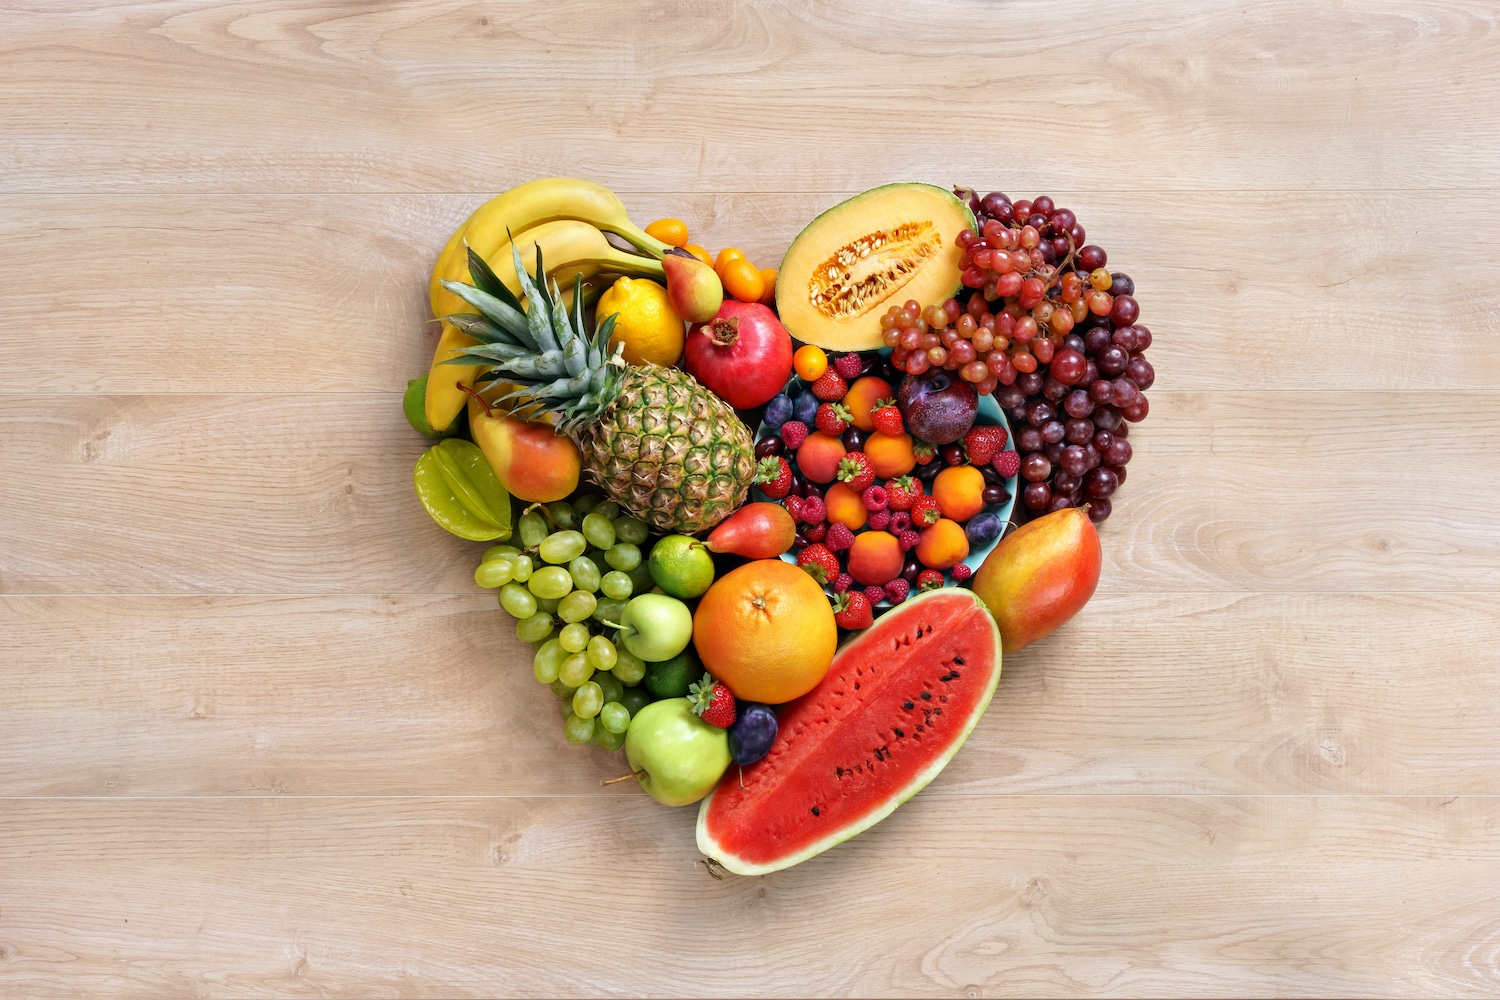 Heart healthy foods in the shape of a heart